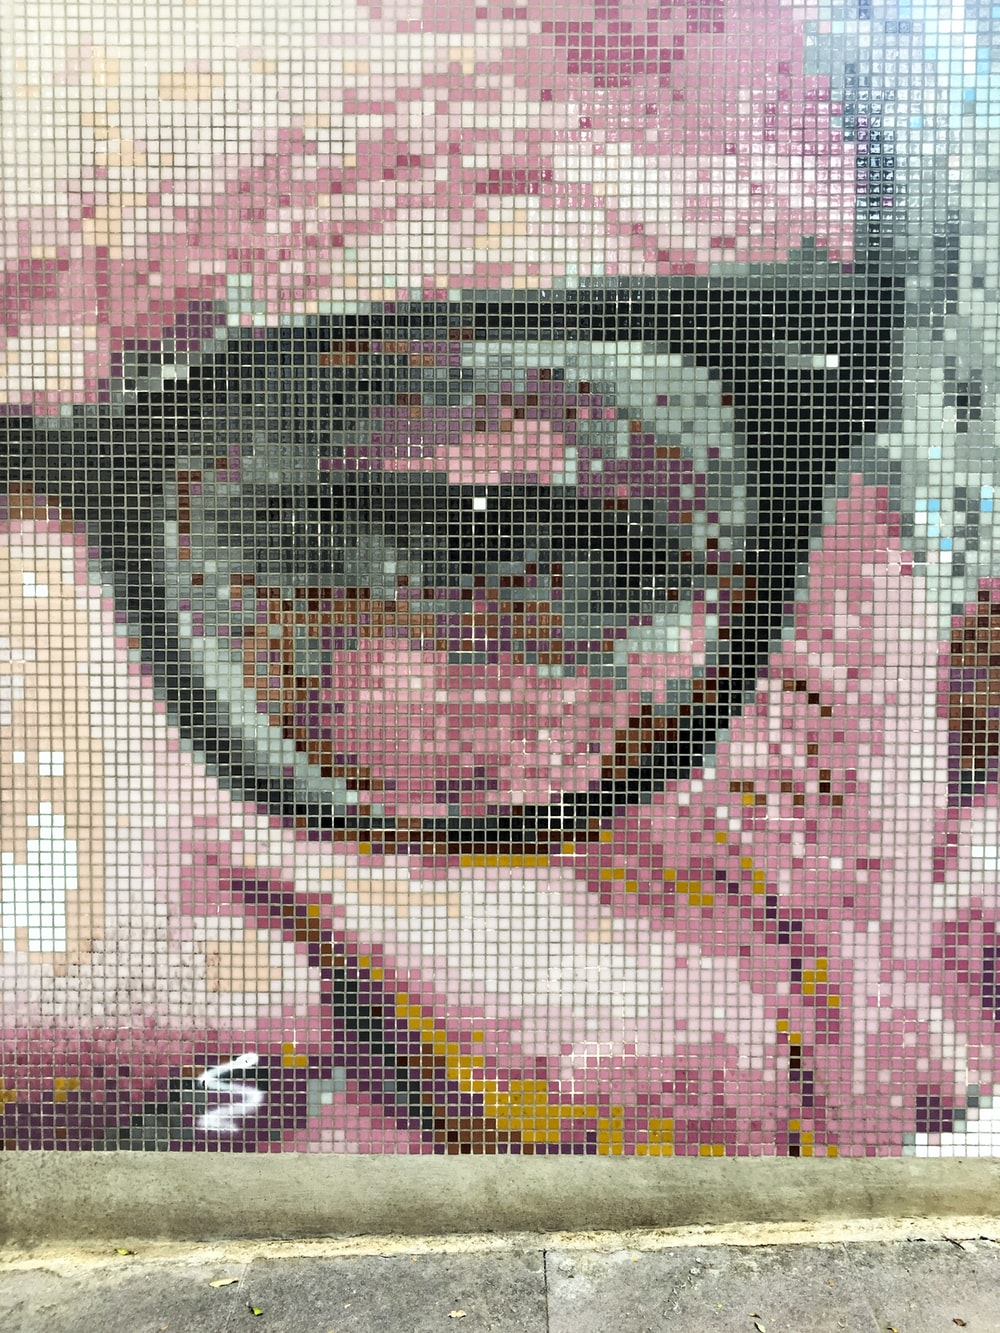 painting of man with eyeglasses